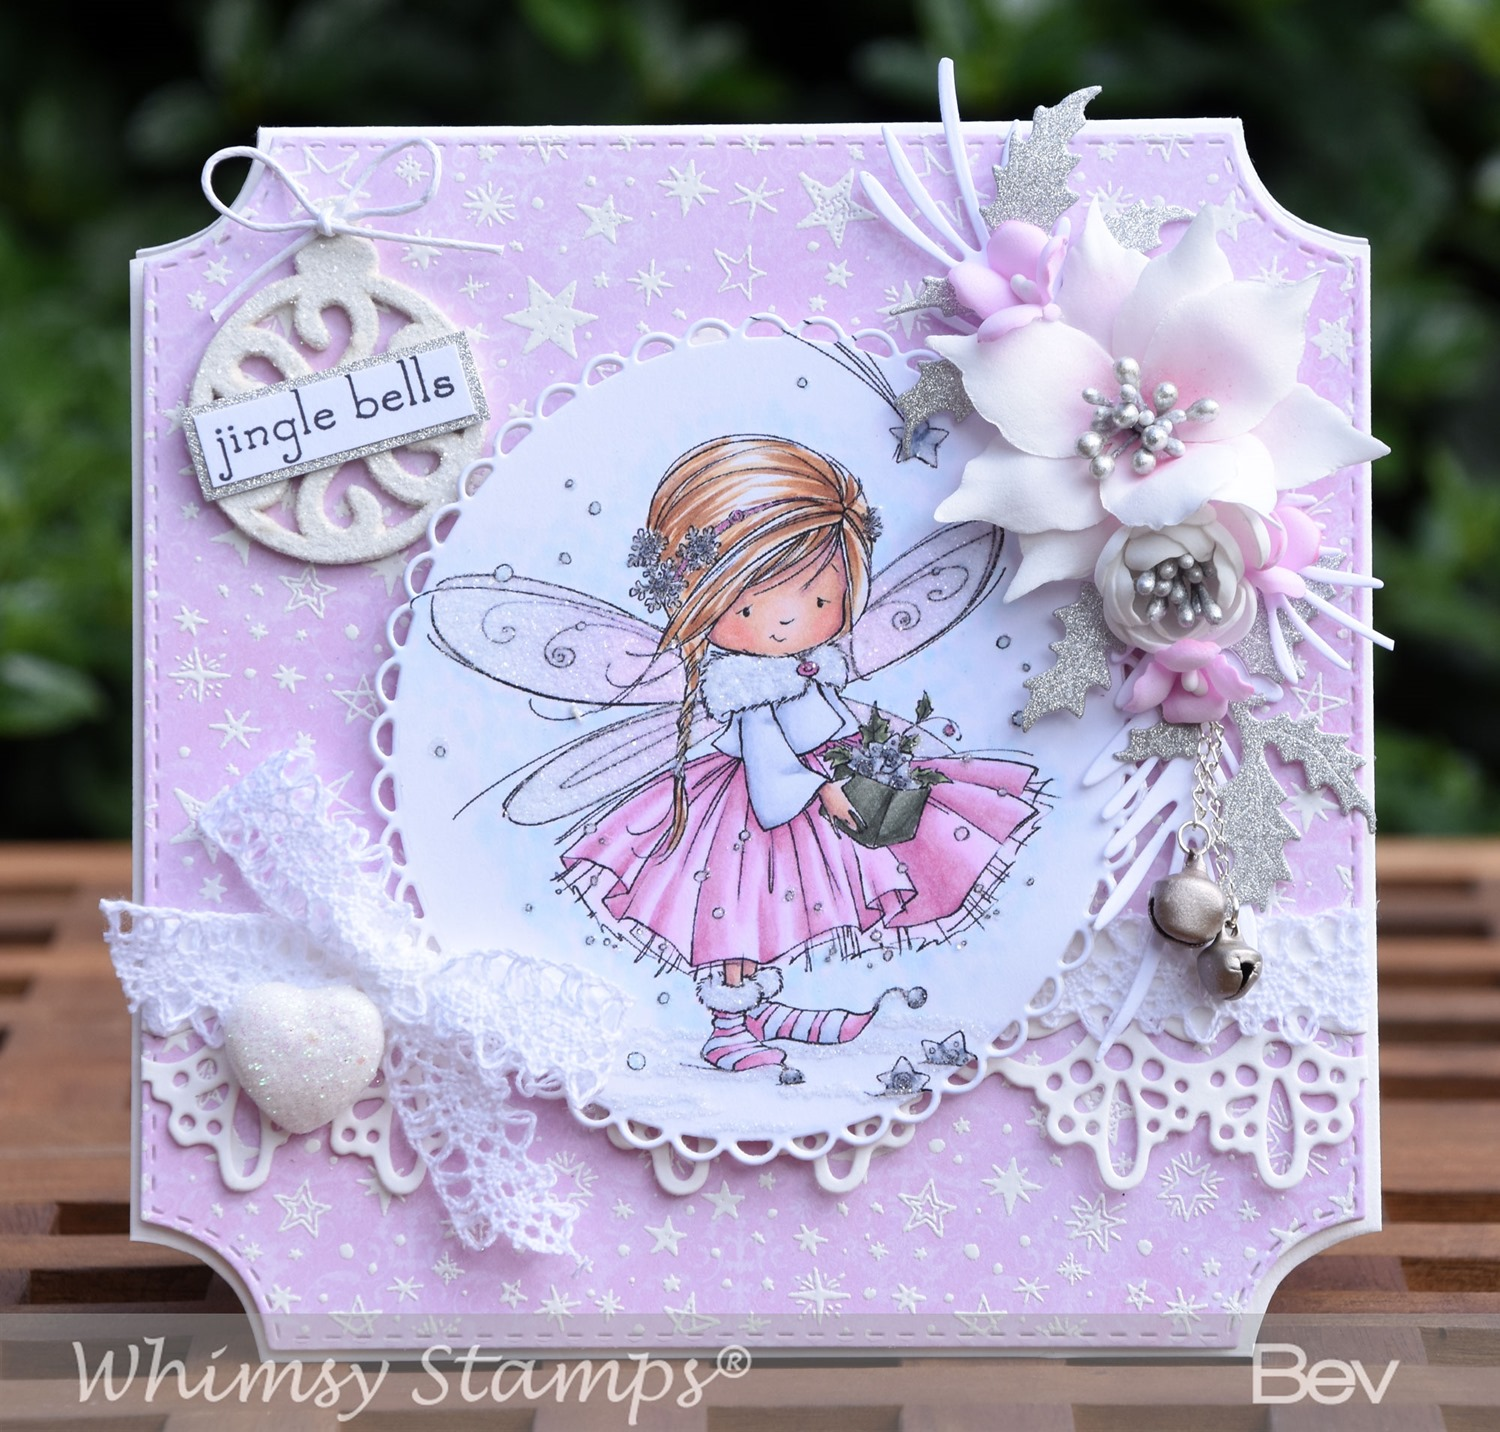 [Bev-Rochester-Whimsy-Stamps-Anna-the-Fairy-w%5B1%5D]